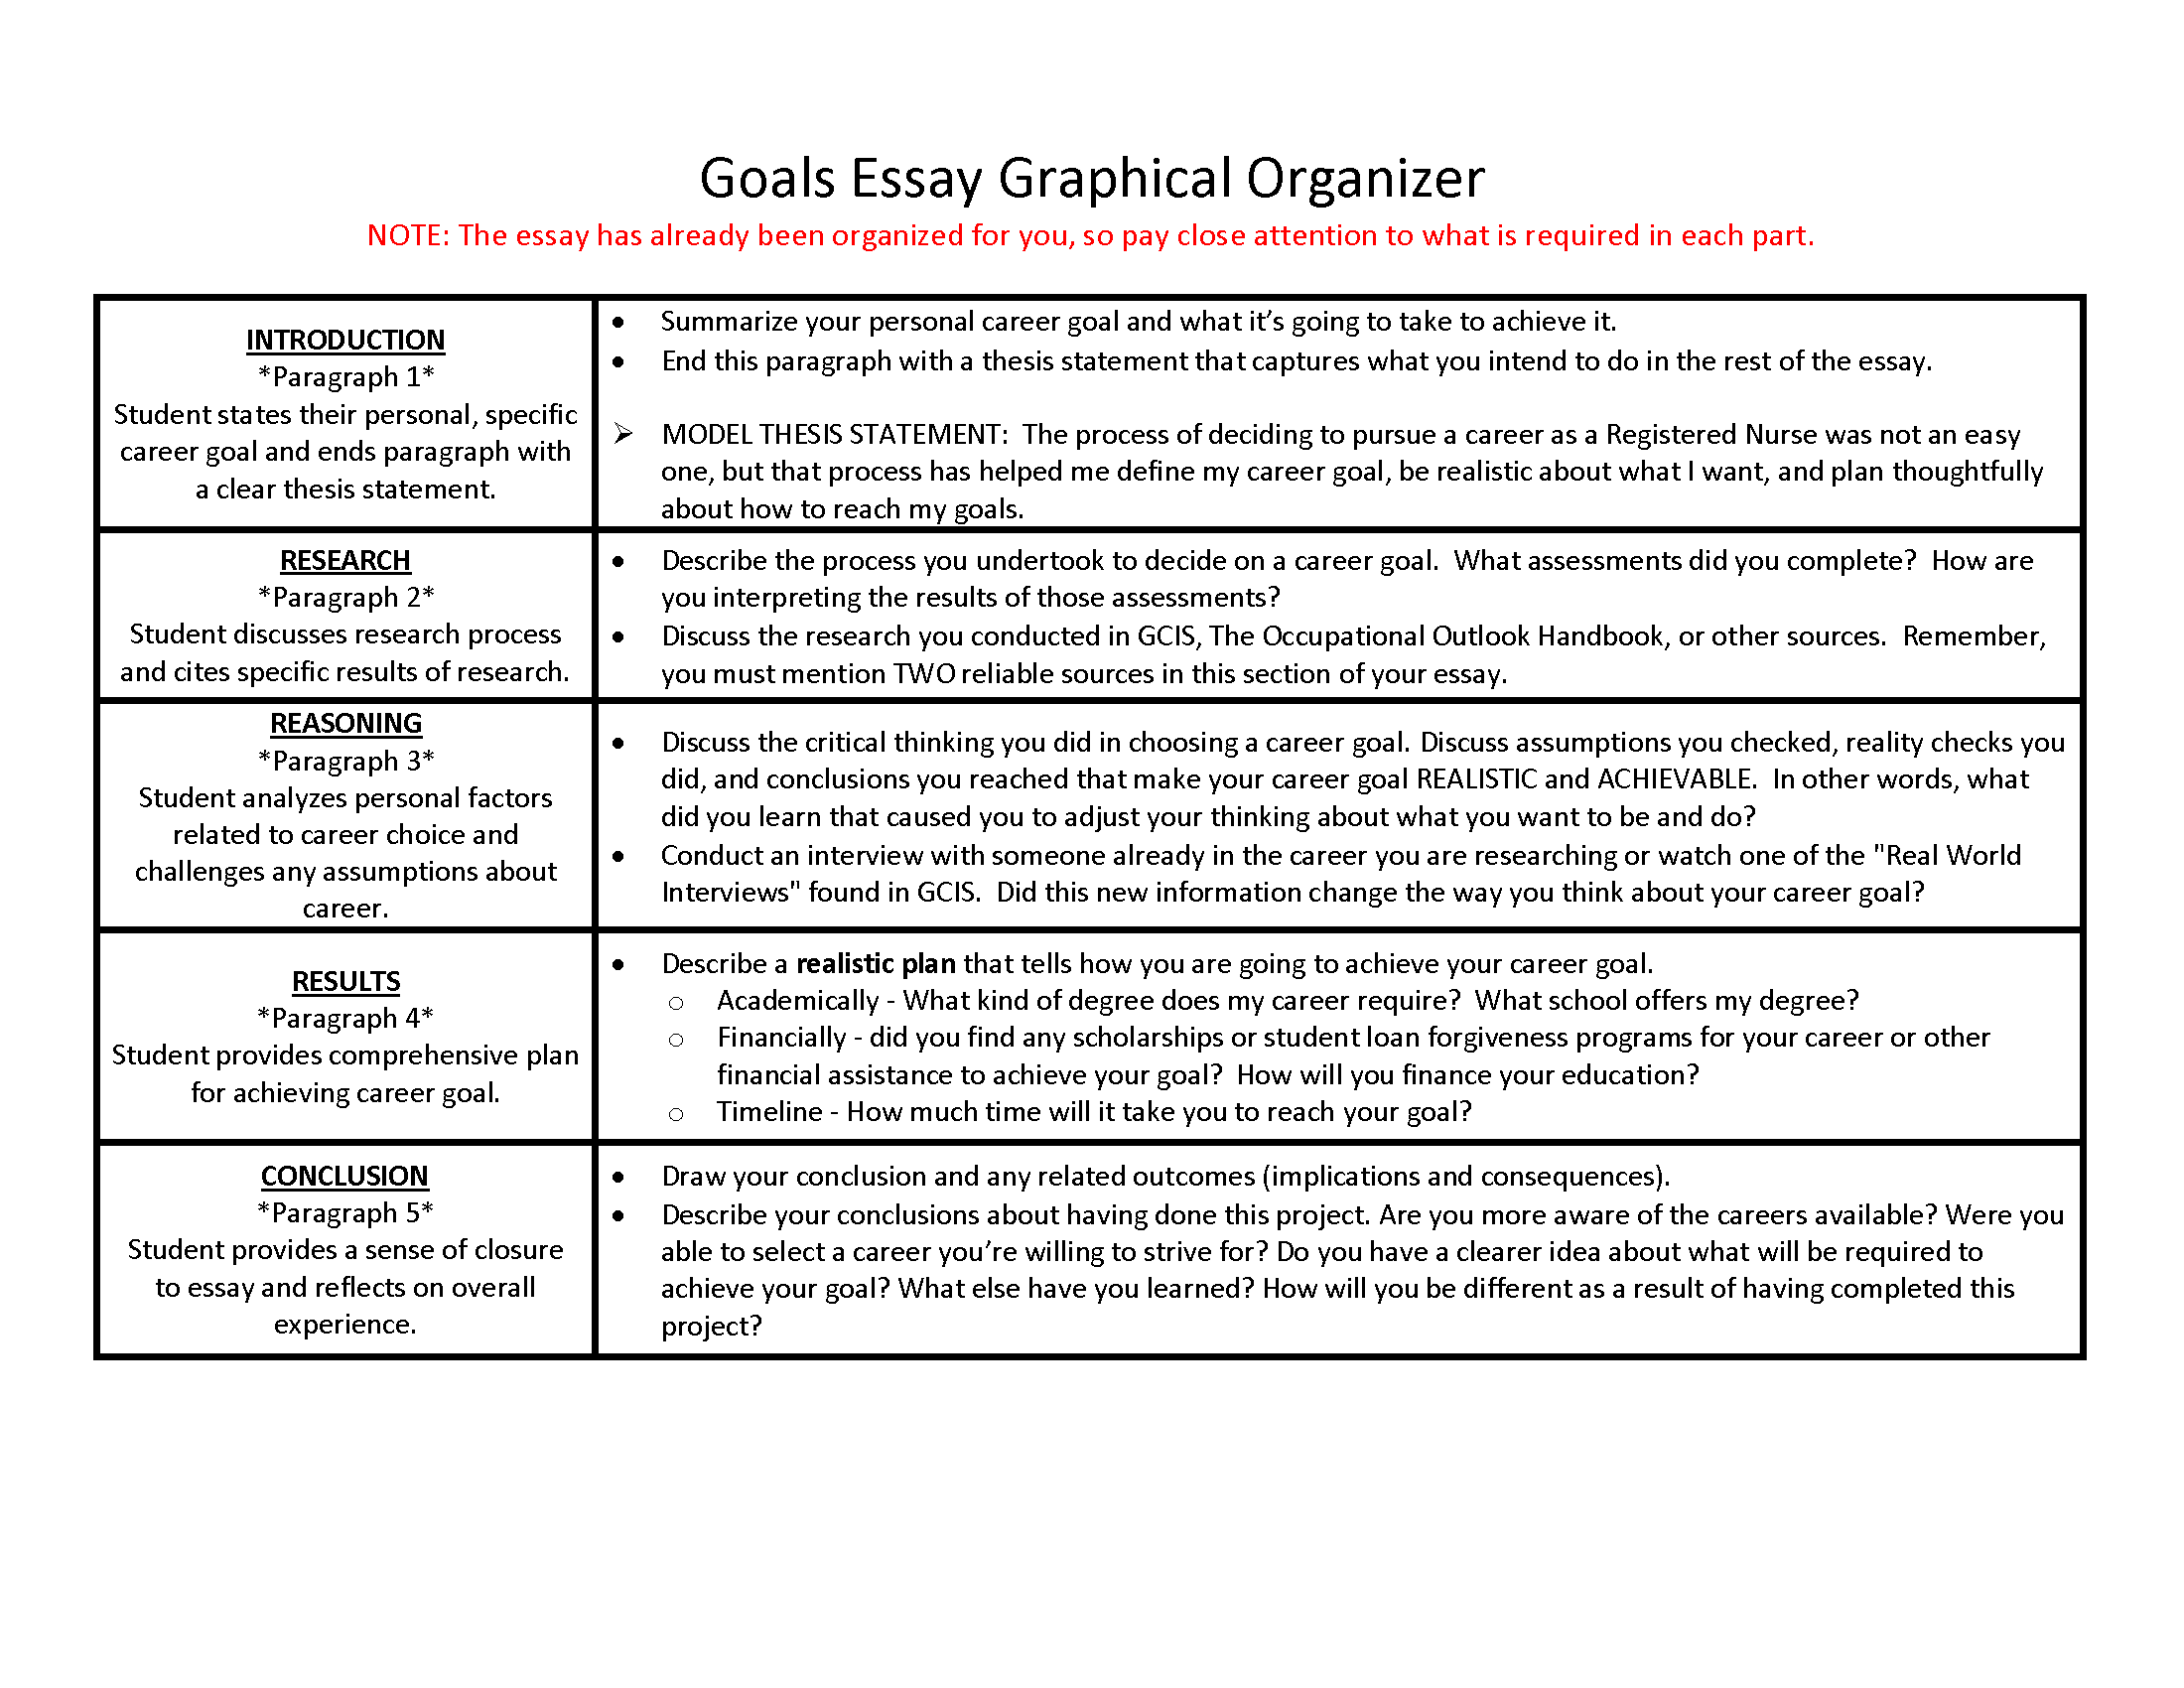 Goals and expectations essay format